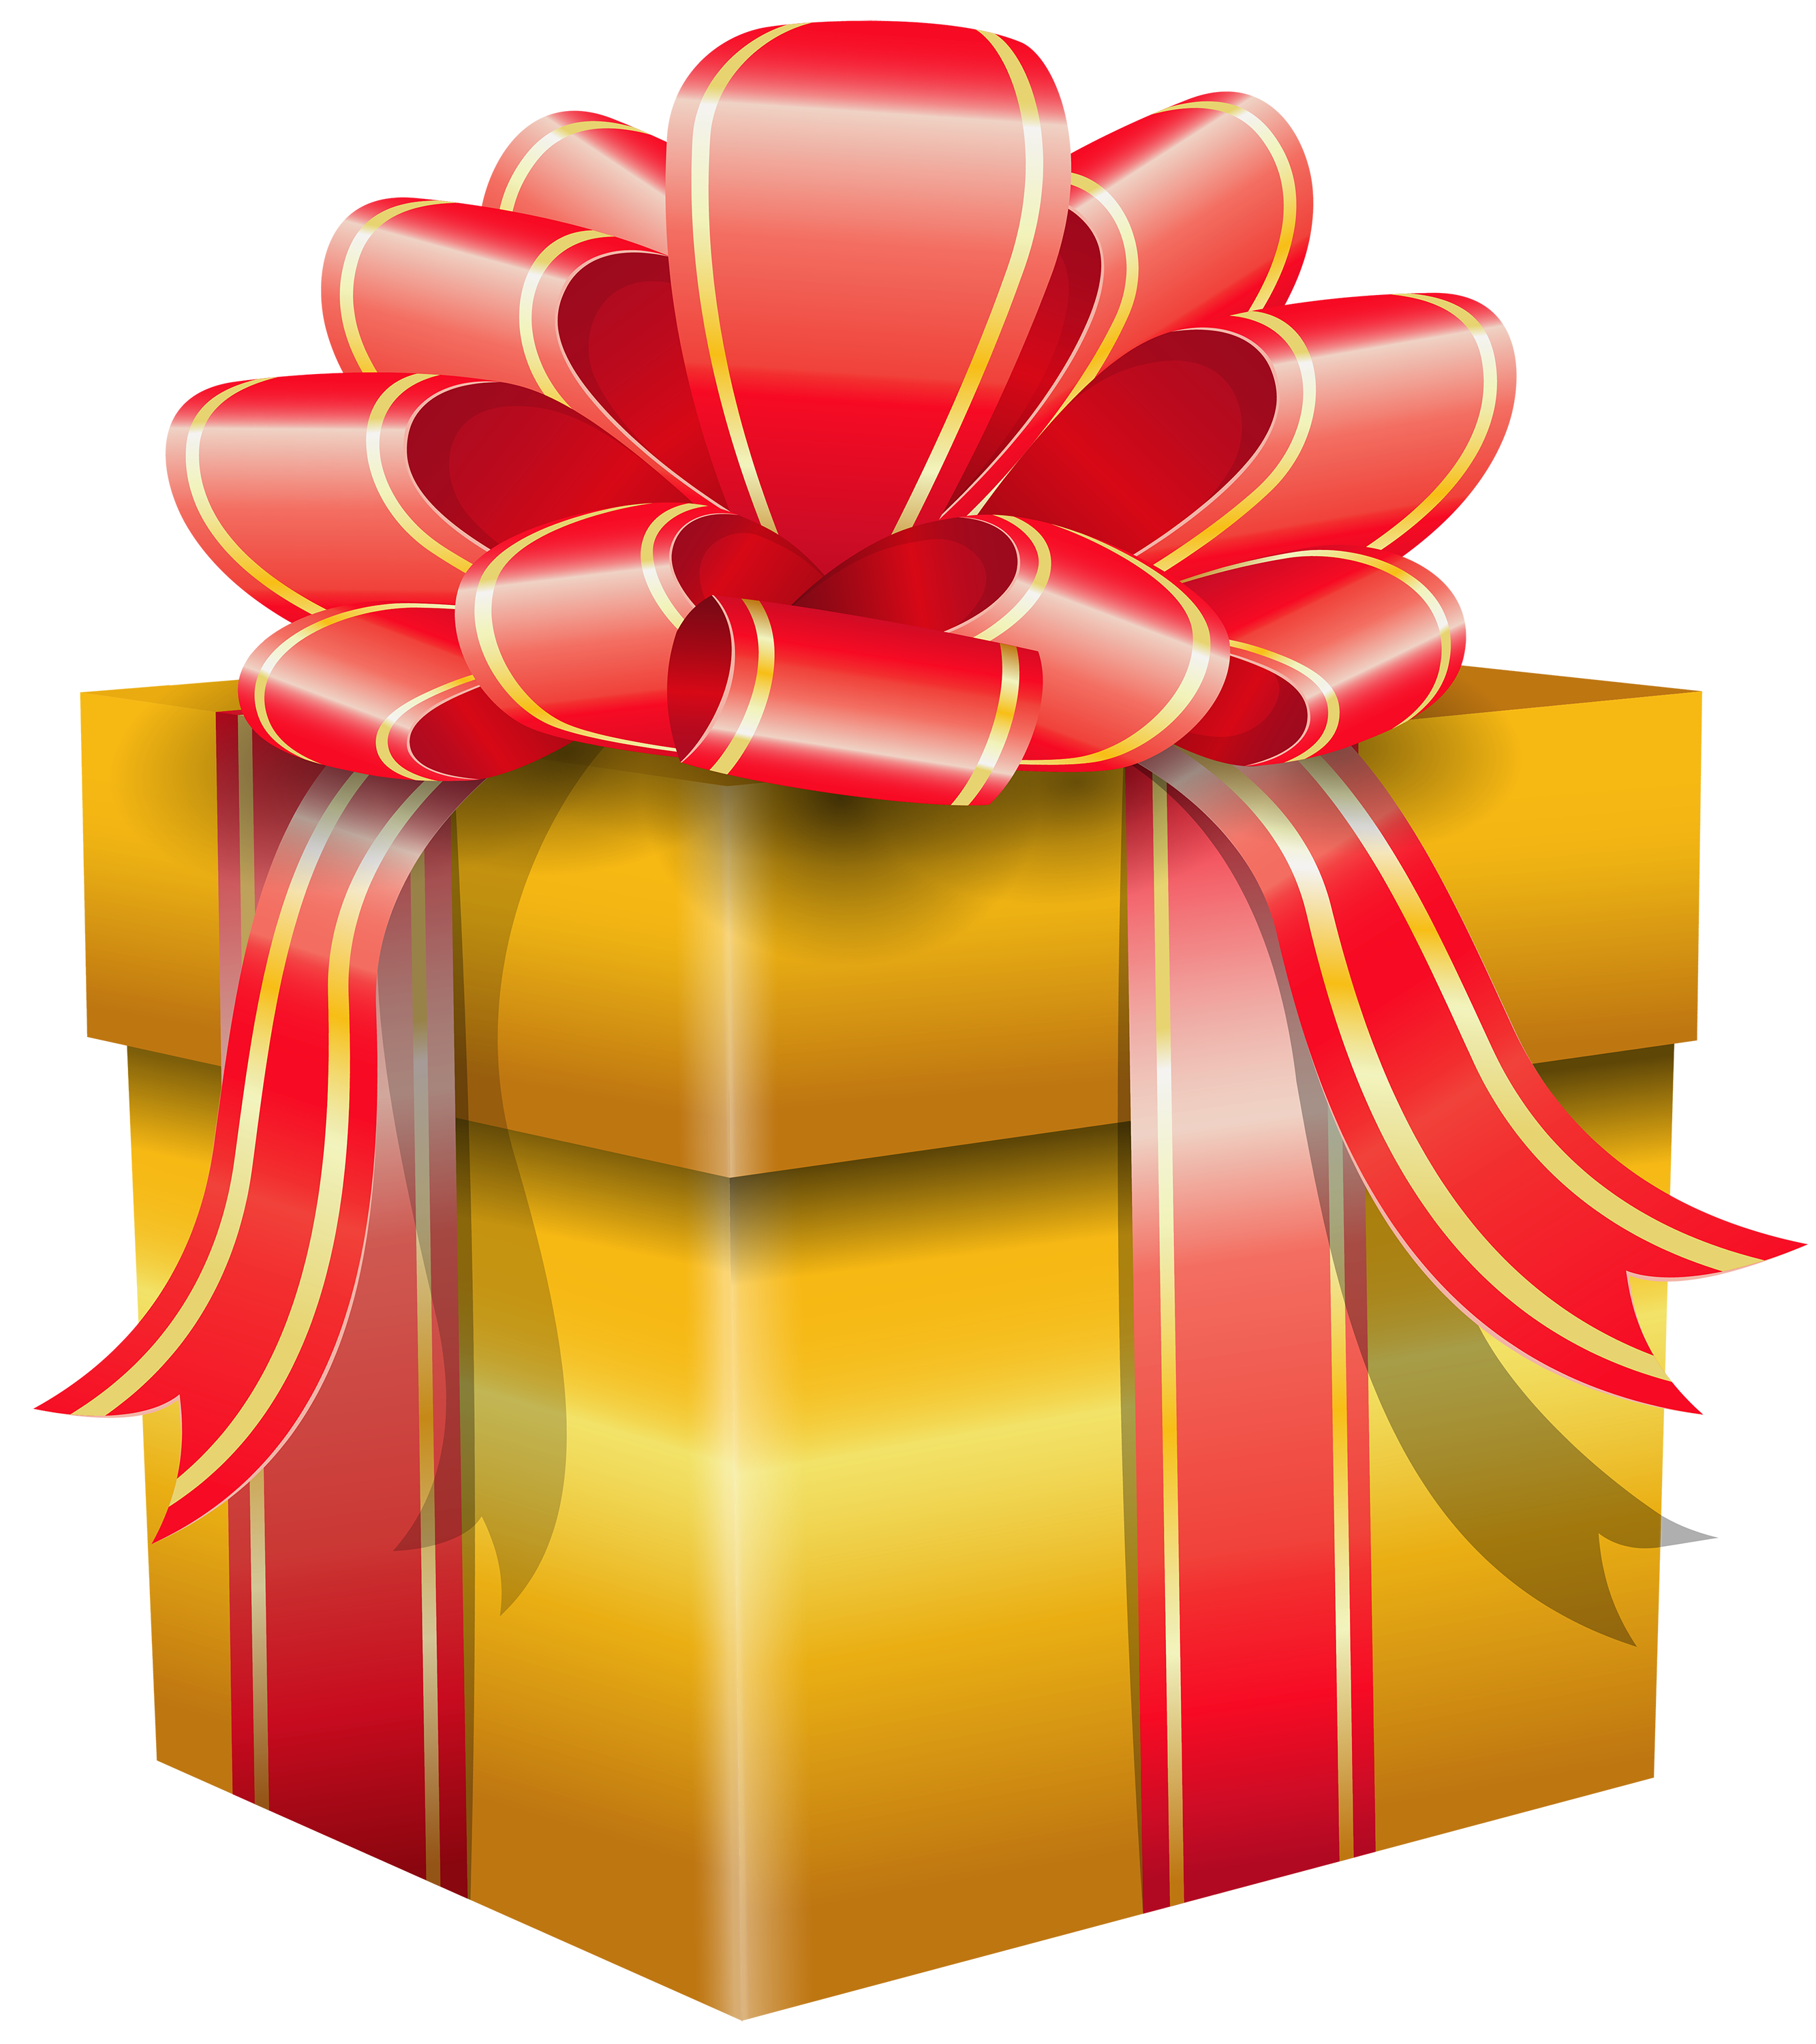 Clipart present special gift. Yellow box png best